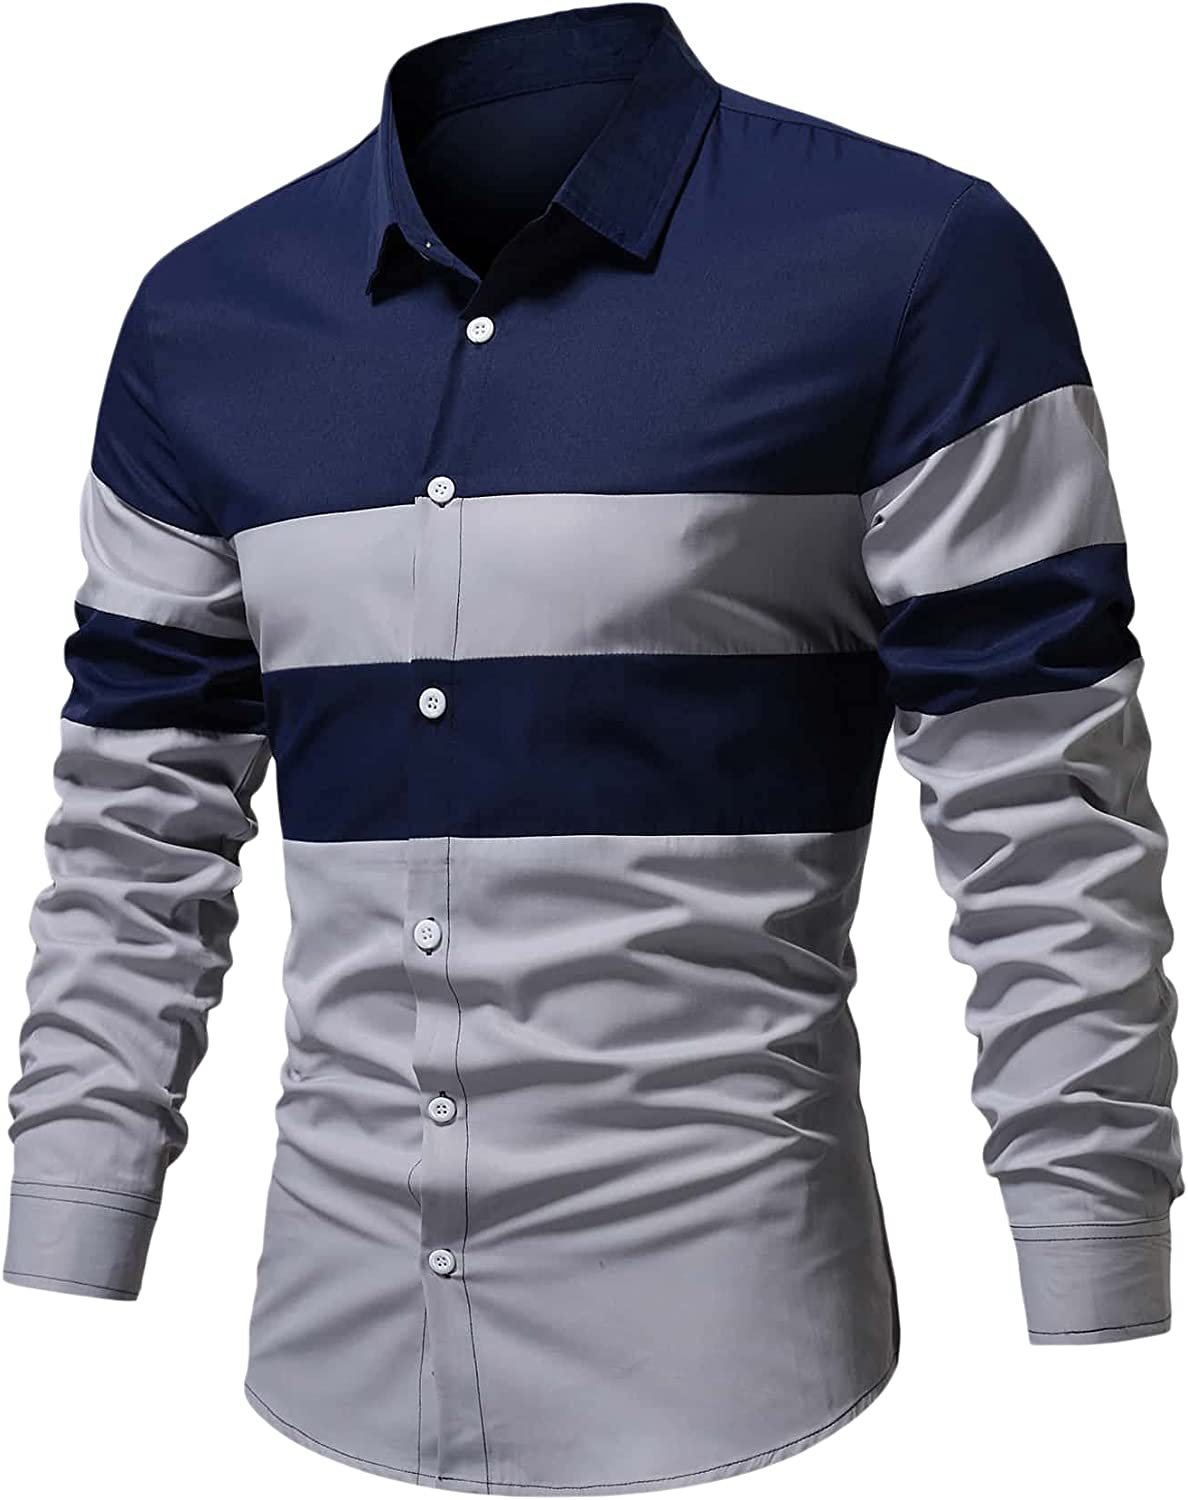 Milumia Men's Long Sleeve Polo Shirts Casual Slim Fit Contrast Color Stitching Cotton Shirts